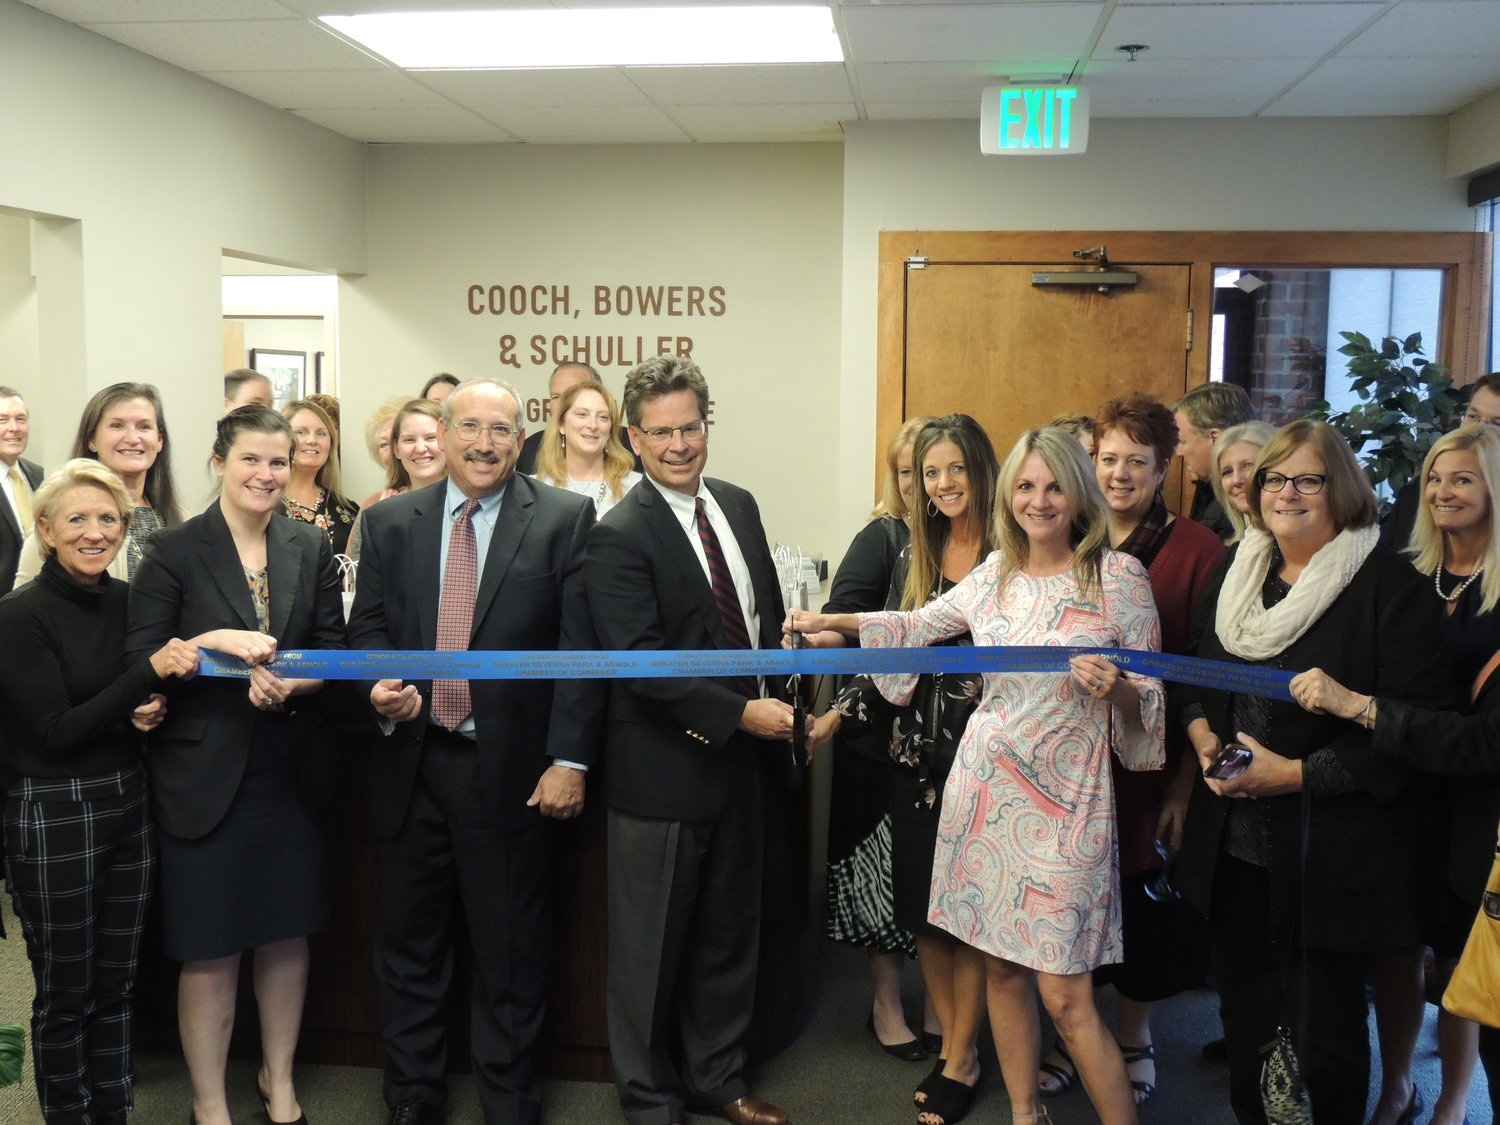 At a recent ceremony through the Greater Severna Park and Arnold Chamber of Commerce, the leadership team behind Cooch, Bowers and Schuller cut the ribbon to celebrate the office's 30th anniversary.